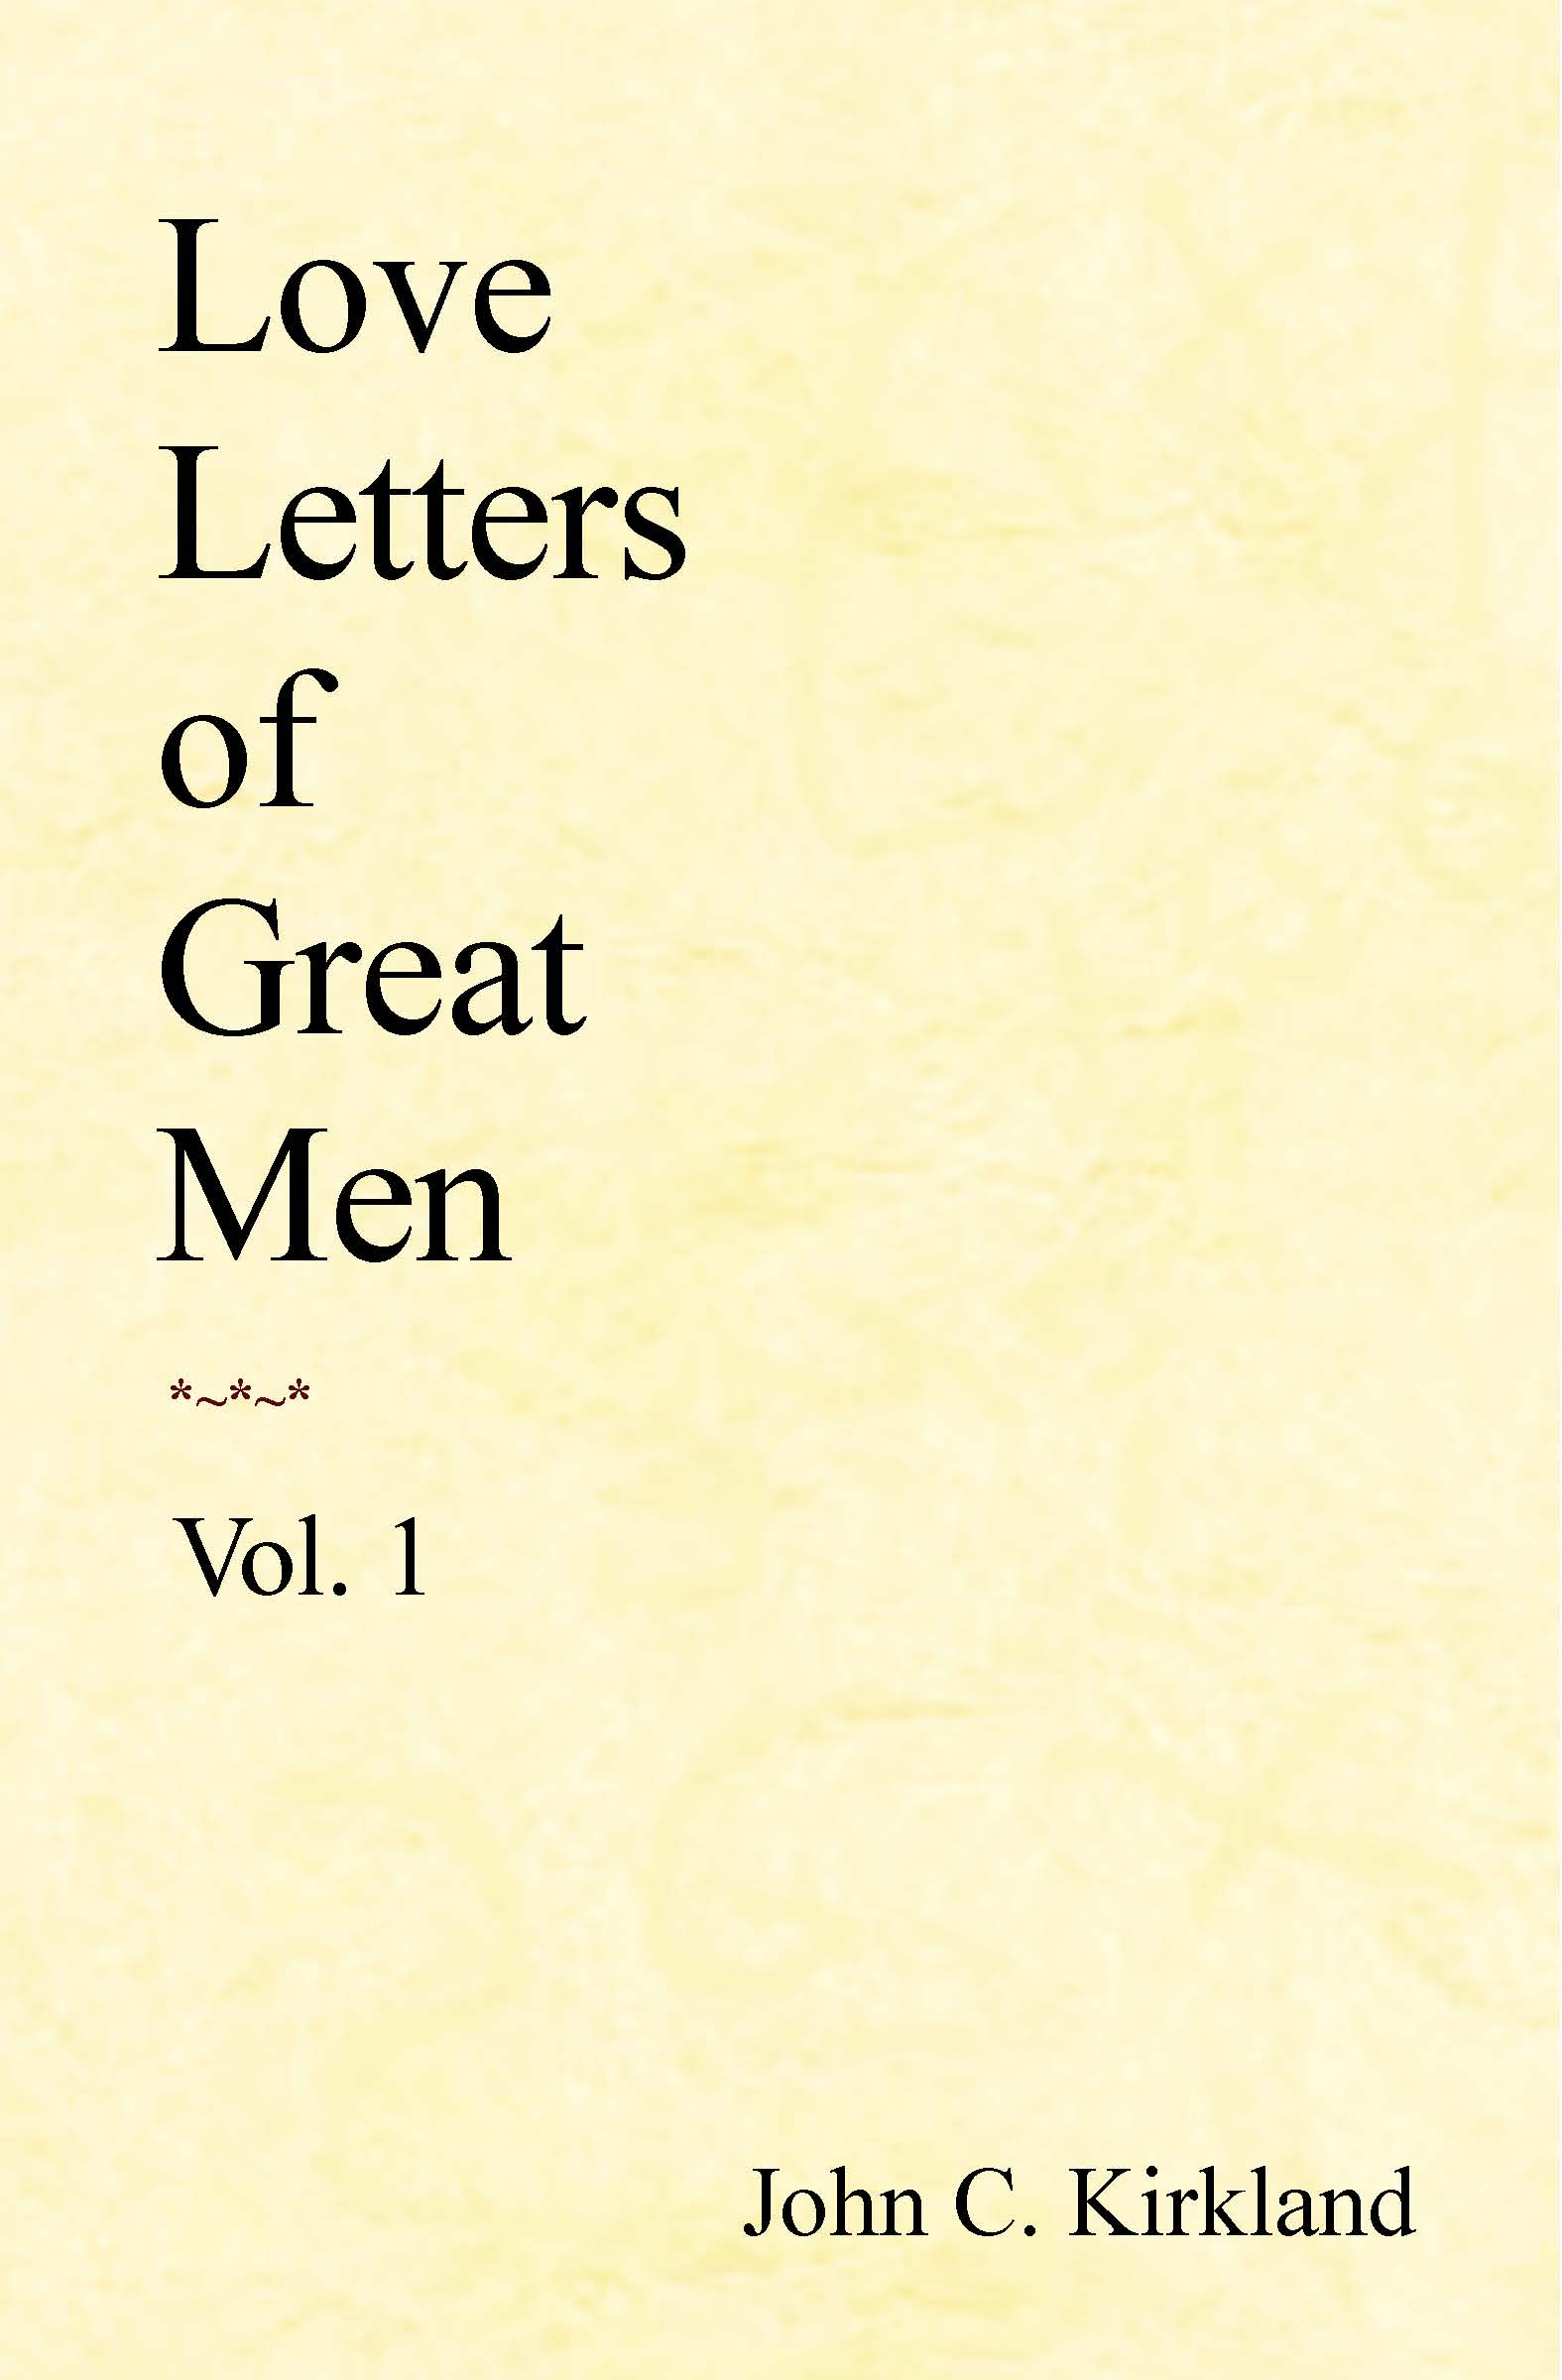 FileLove Letters Of Great MenJpg  Wikimedia Commons